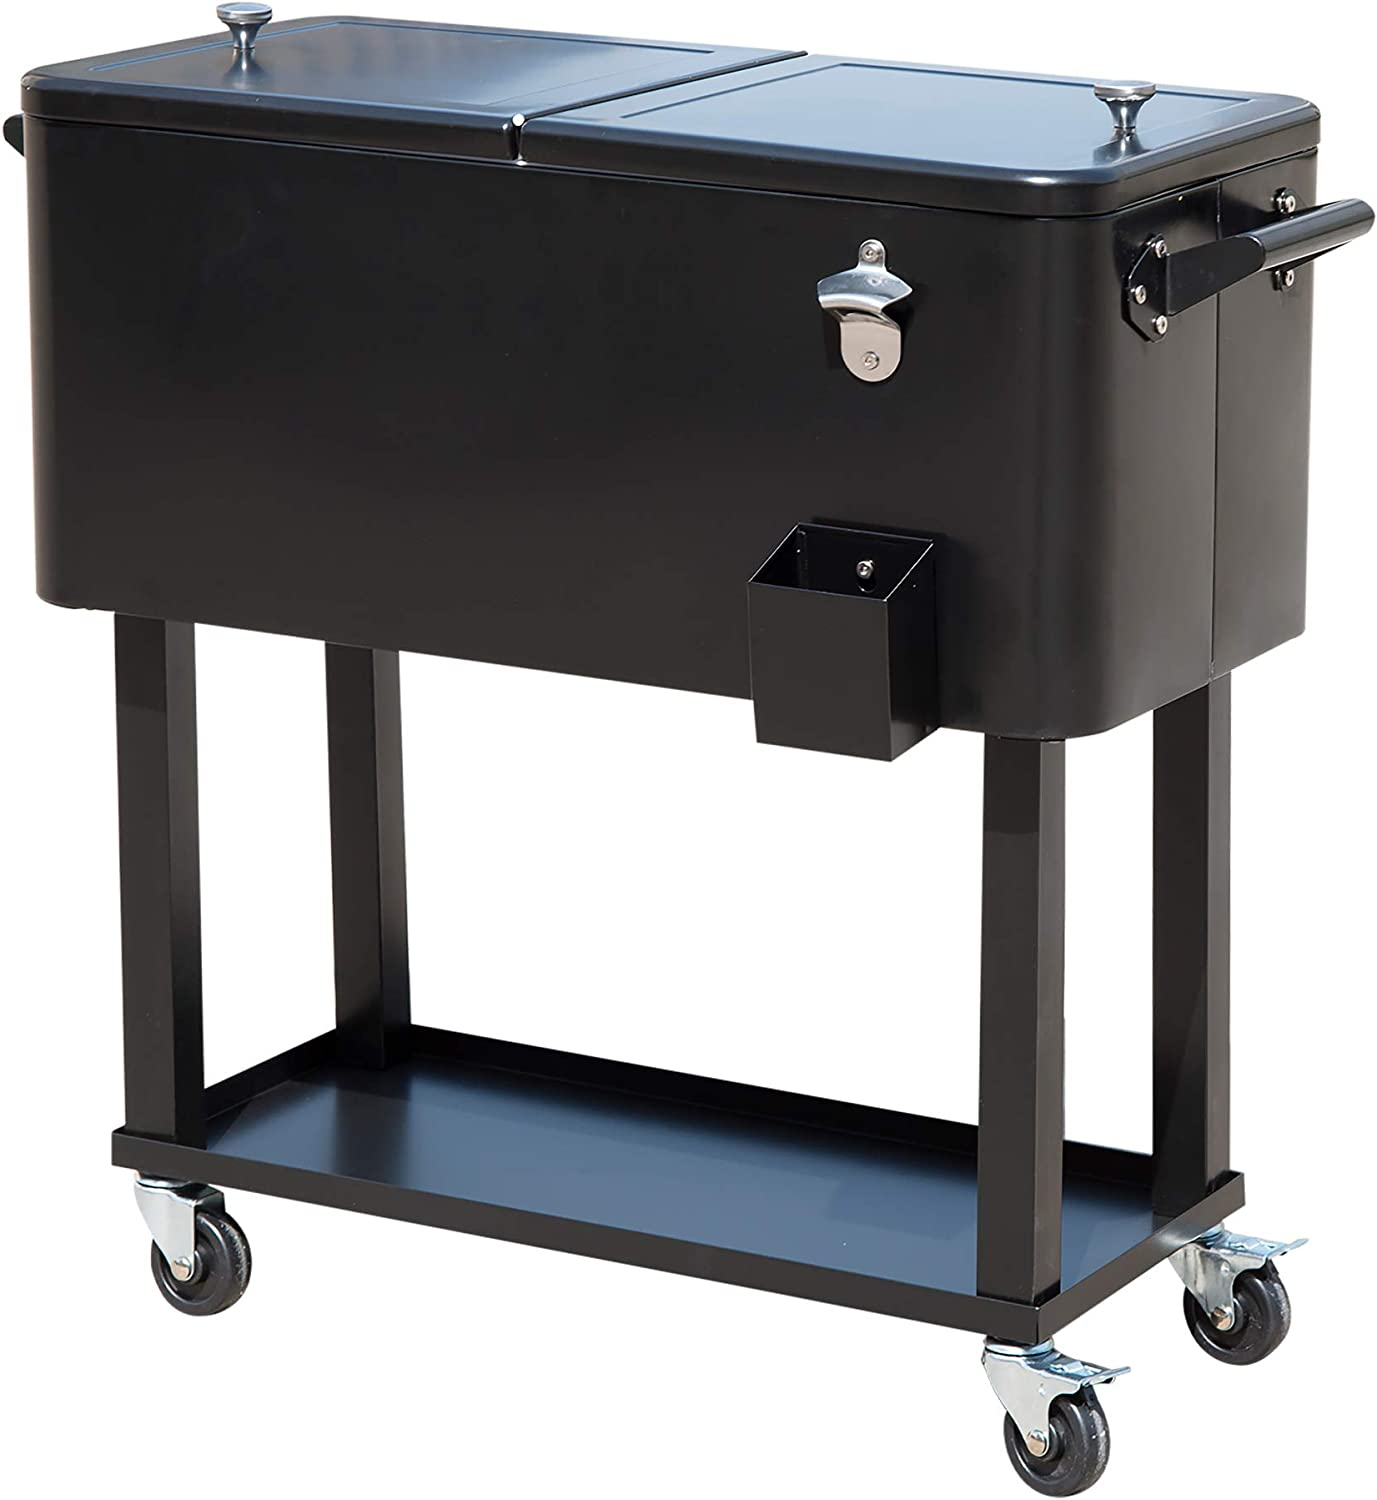 quality assurance Outsunny 80 QT Trust Rolling Cooler Ice Wheels Stand on Chest Outdoor